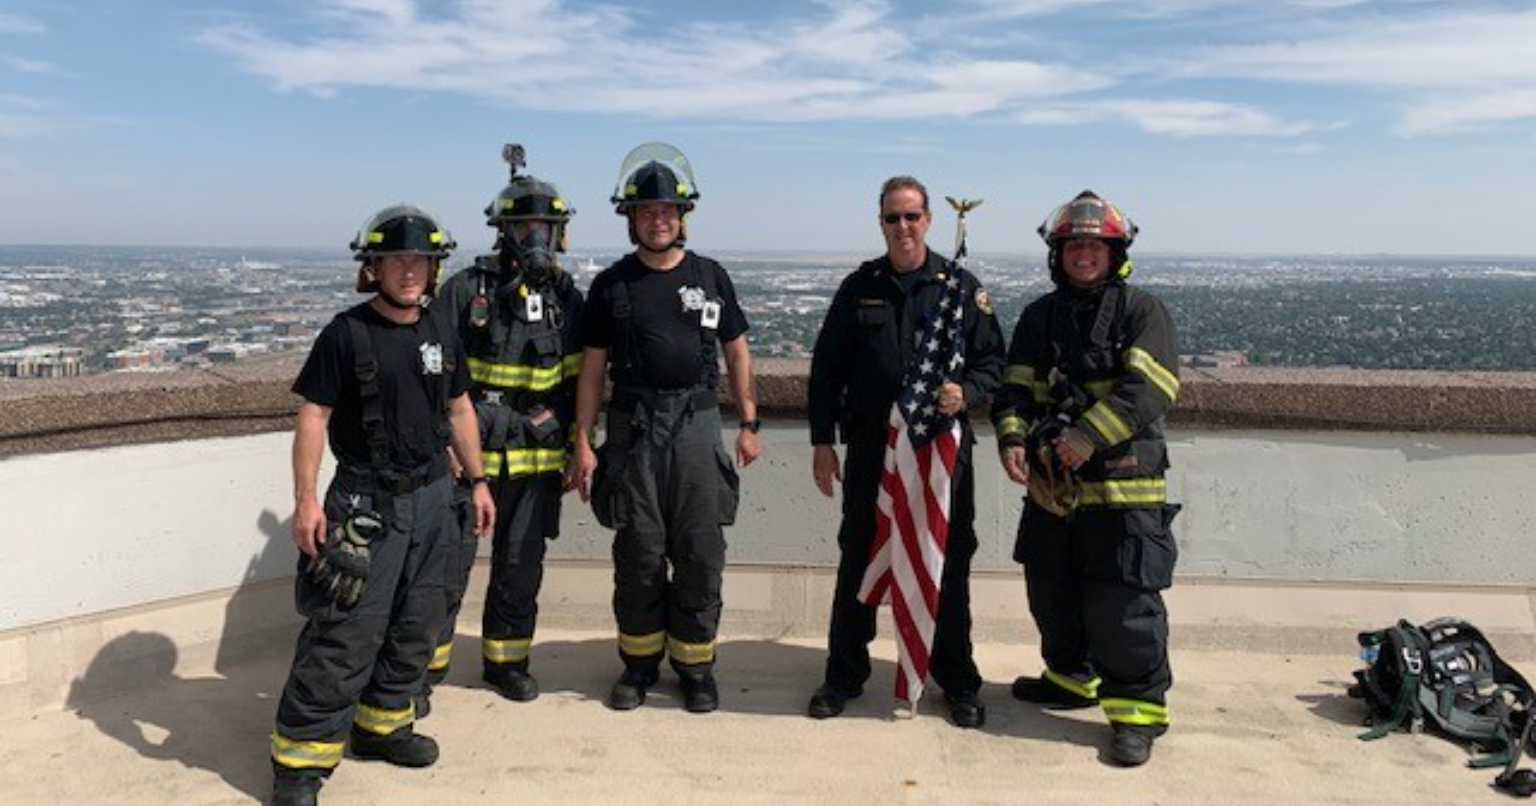 commerce city firefighters in full gear standing on top of building after completing the memorial stair climb